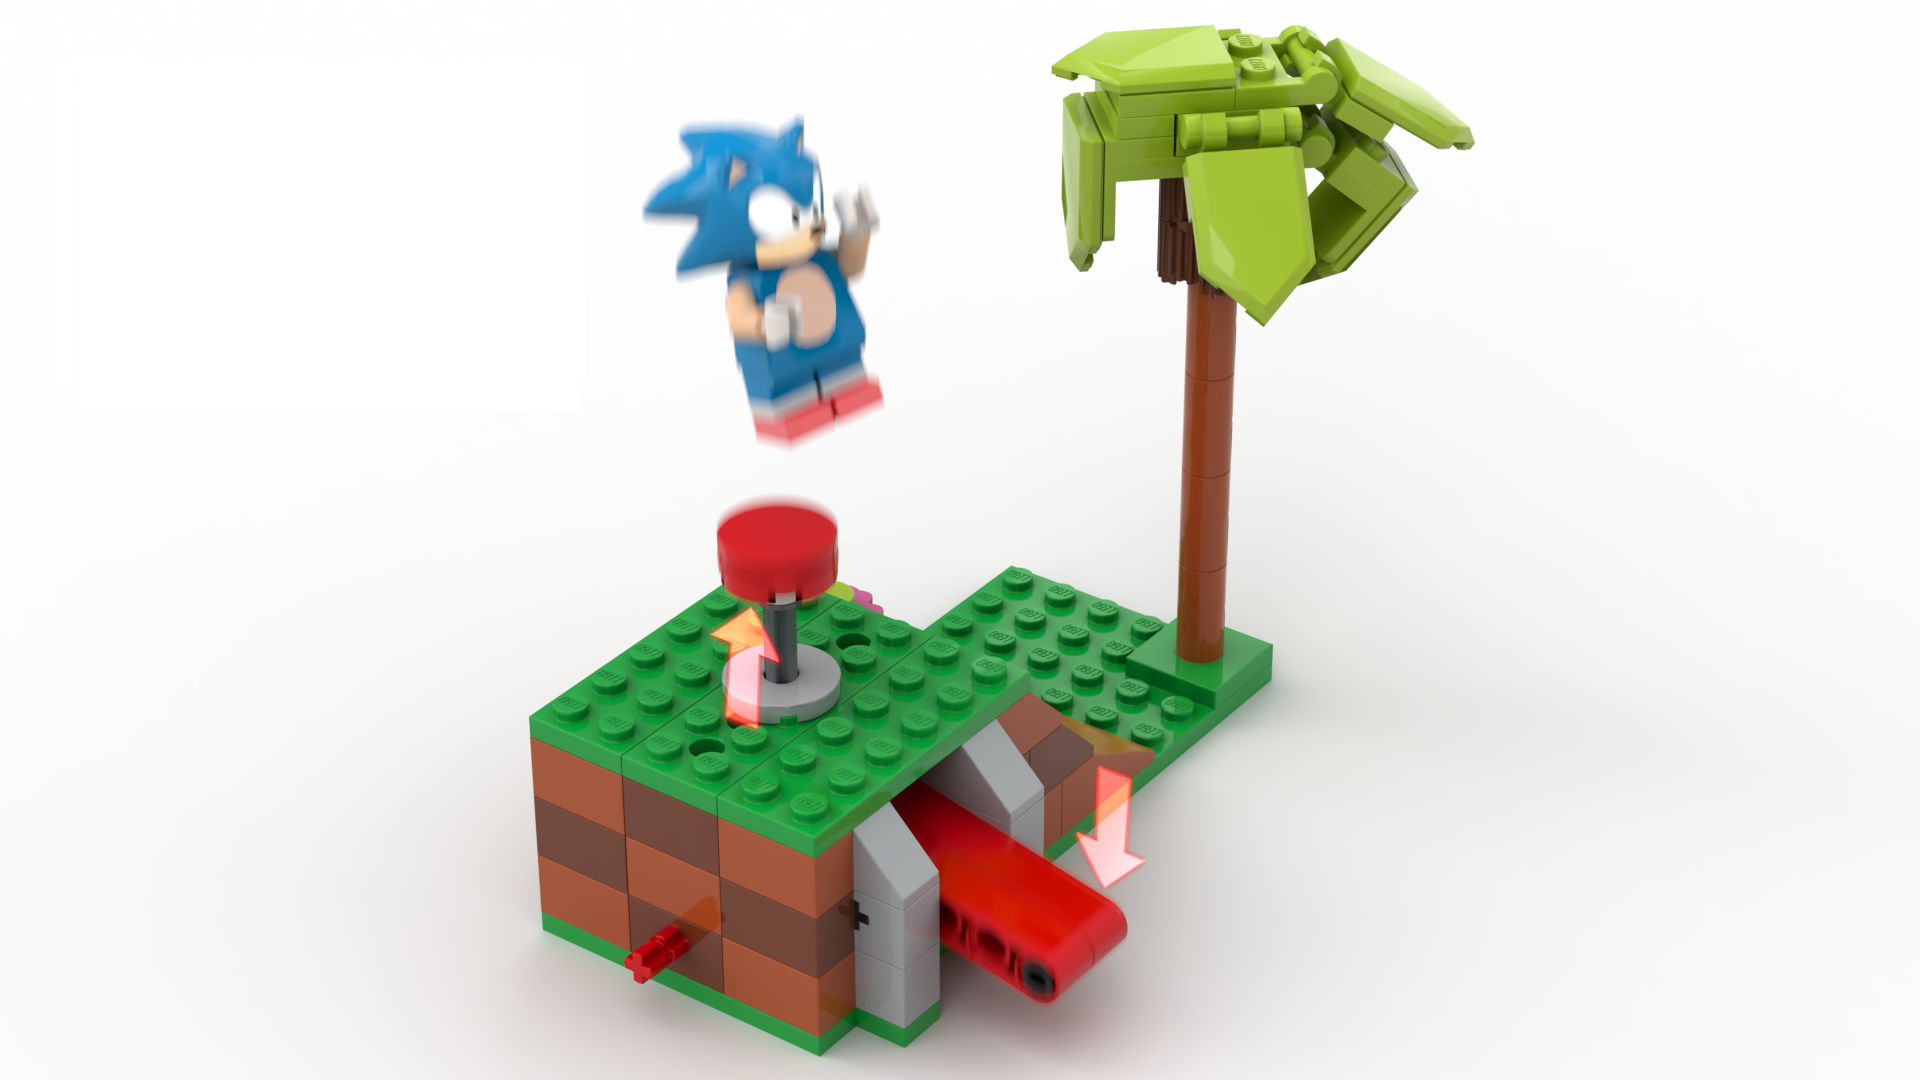 This incredible Sonic the Hedgehog Lego set could release if